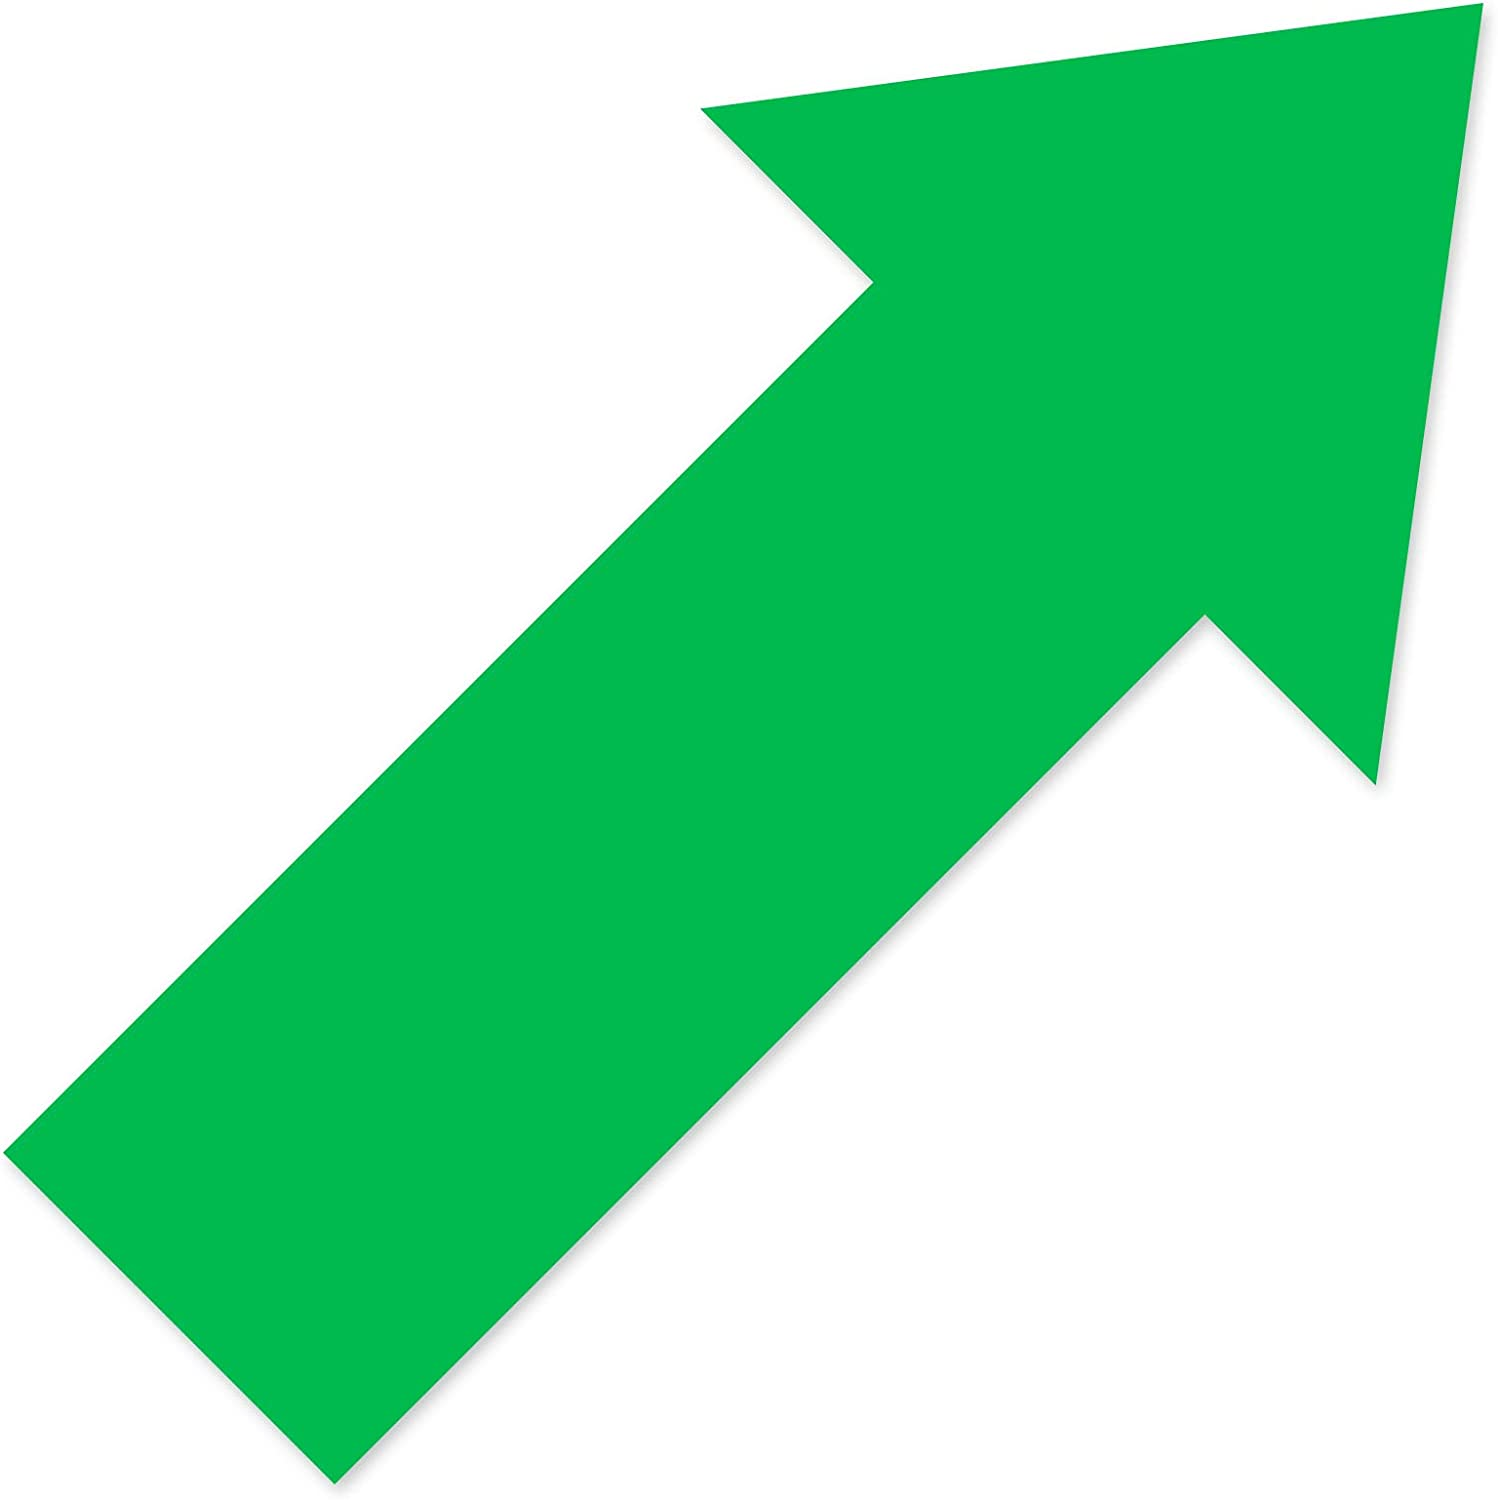 24 Pieces Arrow Stickers, 12 Inch Glossy Arrow Decal Sticker Store Sign 5 Color Directional Arrow Stickers Removable Arrows Sign for Yard Floor and Wall Applications (Green)